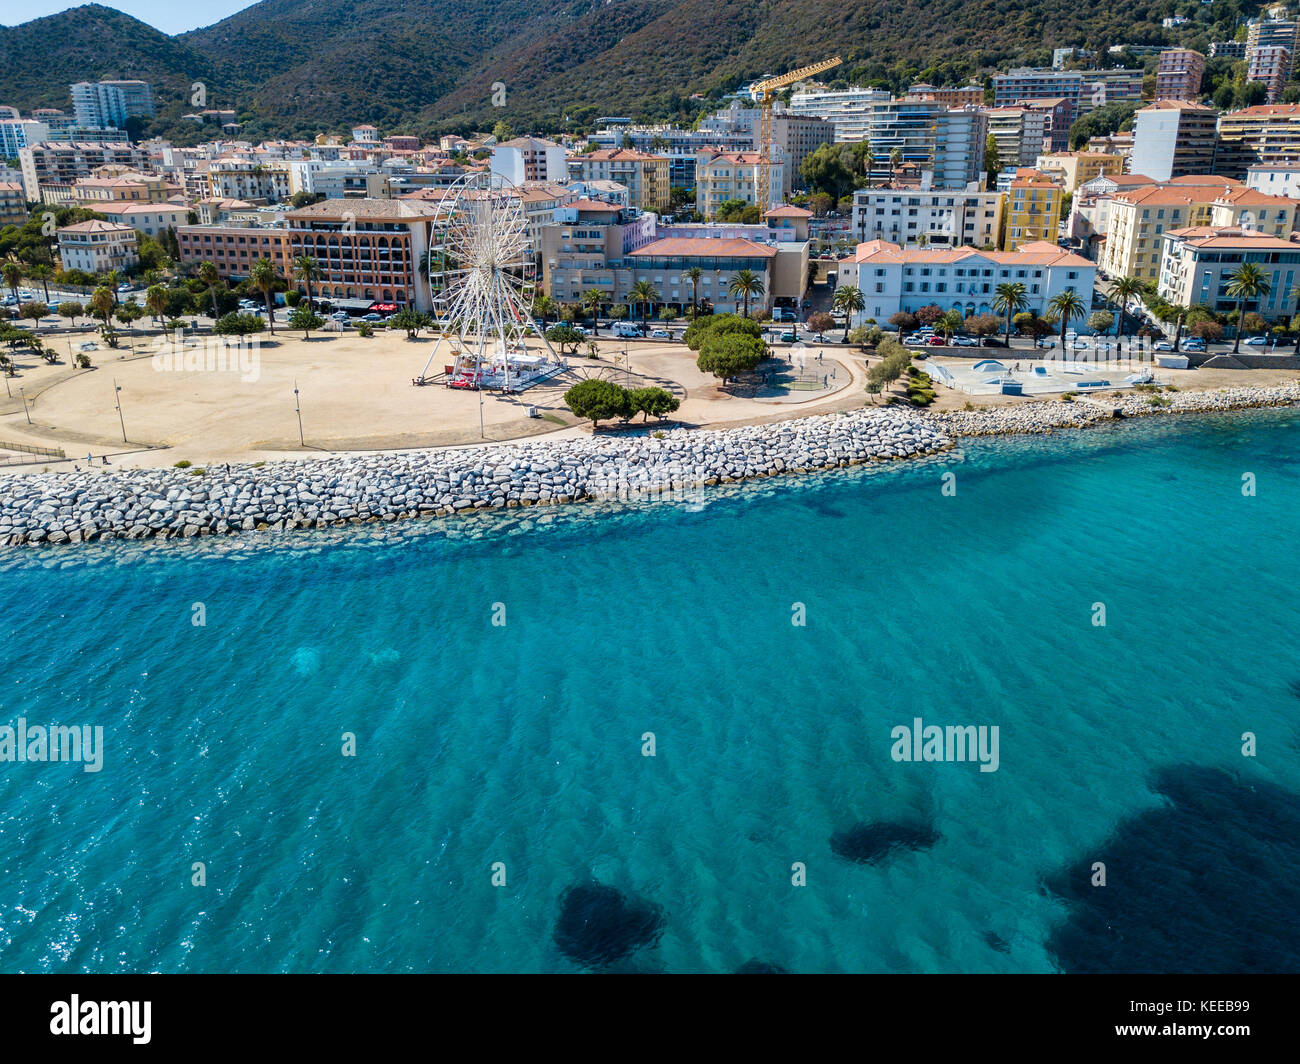 Aerial view of Ajaccio Corsica France Ferris wheel and playground